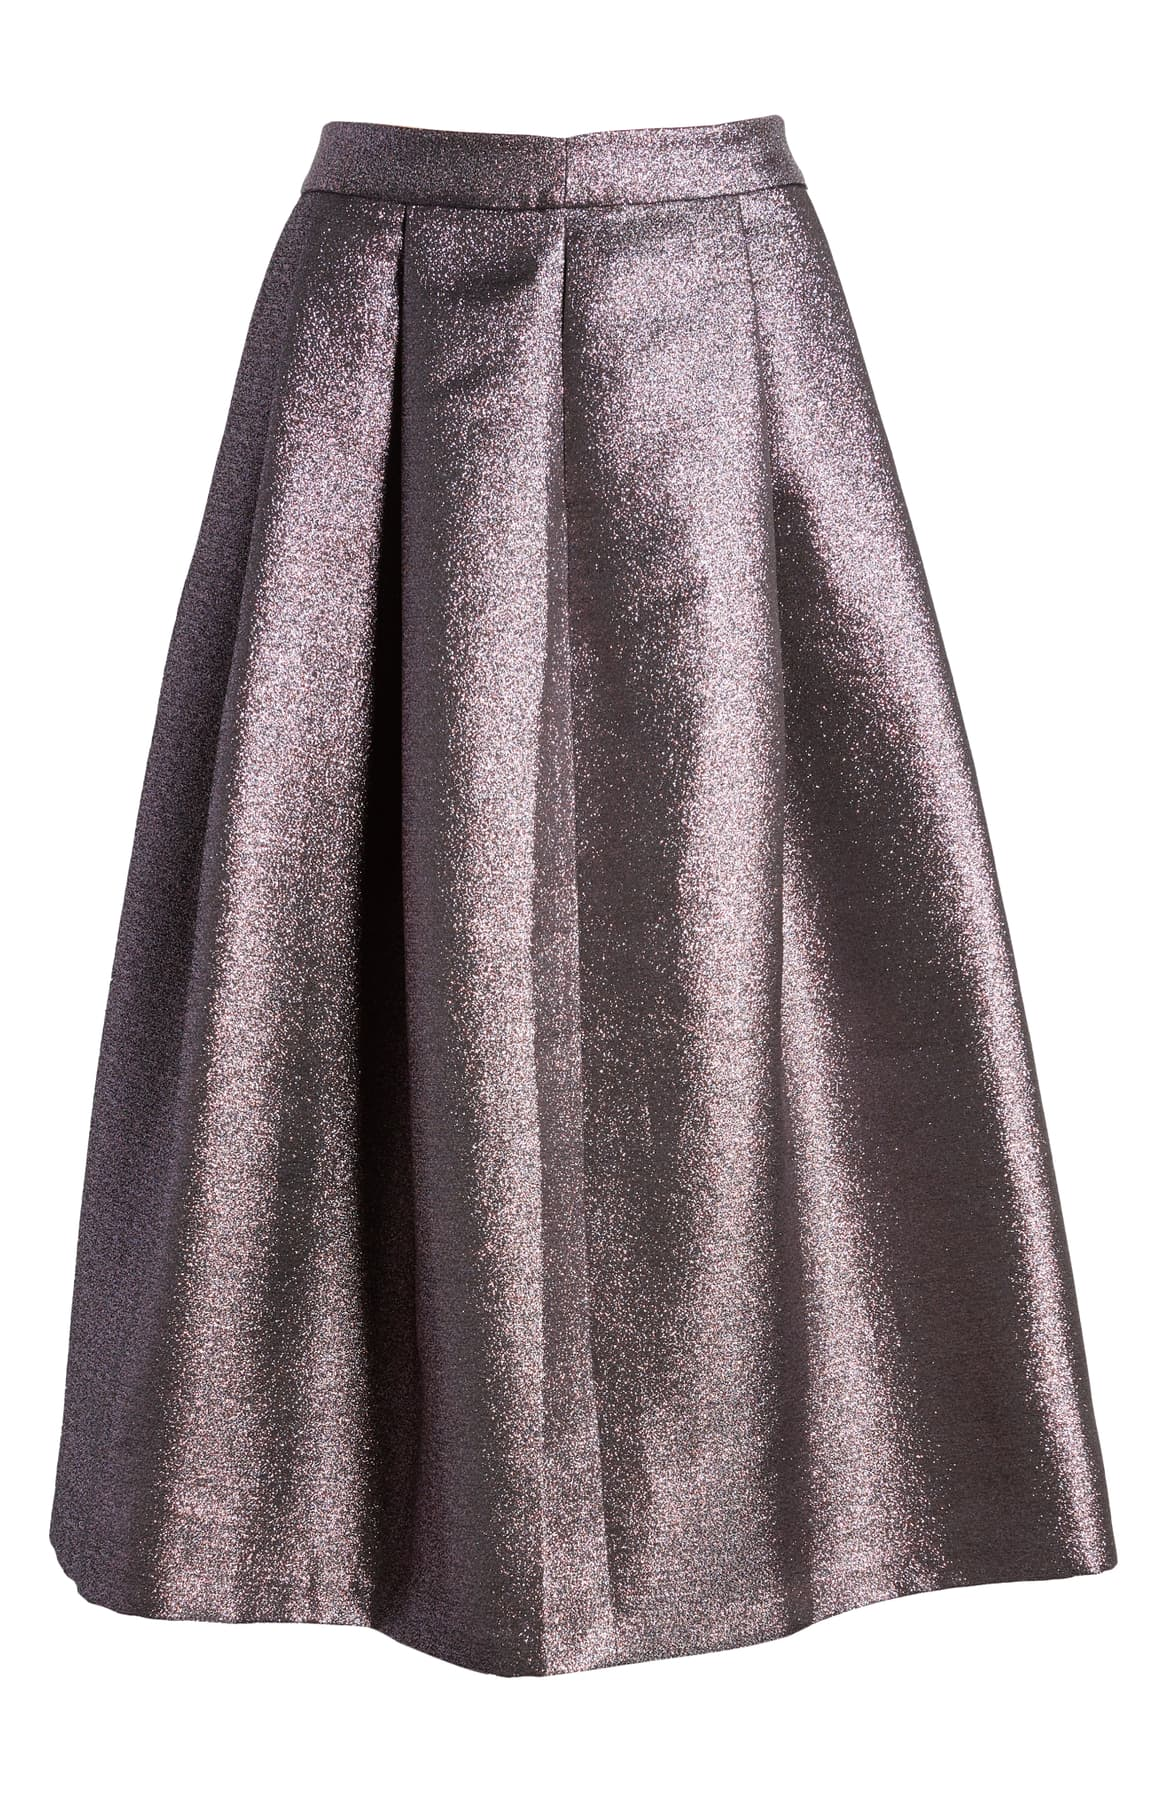 "<a  href=""https://shop.nordstrom.com/s/halogen-x-atlantic-pacific-pleated-metallic-skirt-nordstrom-exclusive/5356606/full?origin=keywordsearch-personalizedsort&breadcrumb=Home%2FAll%20Results&color=purple%20shimmer"" target=""_blank"" title=""https://shop.nordstrom.com/s/halogen-x-atlantic-pacific-pleated-metallic-skirt-nordstrom-exclusive/5356606/full?origin=keywordsearch-personalizedsort&breadcrumb=Home%2FAll%20Results&color=purple%20shimmer"">Halogen x Atlantic Pacific Pleated Metallic Skirt - $169</a>. From cozy to gold hued to tailored, Nordstrom has the hottest trends for getting glam this holiday season! (Credit: Nordstrom)"